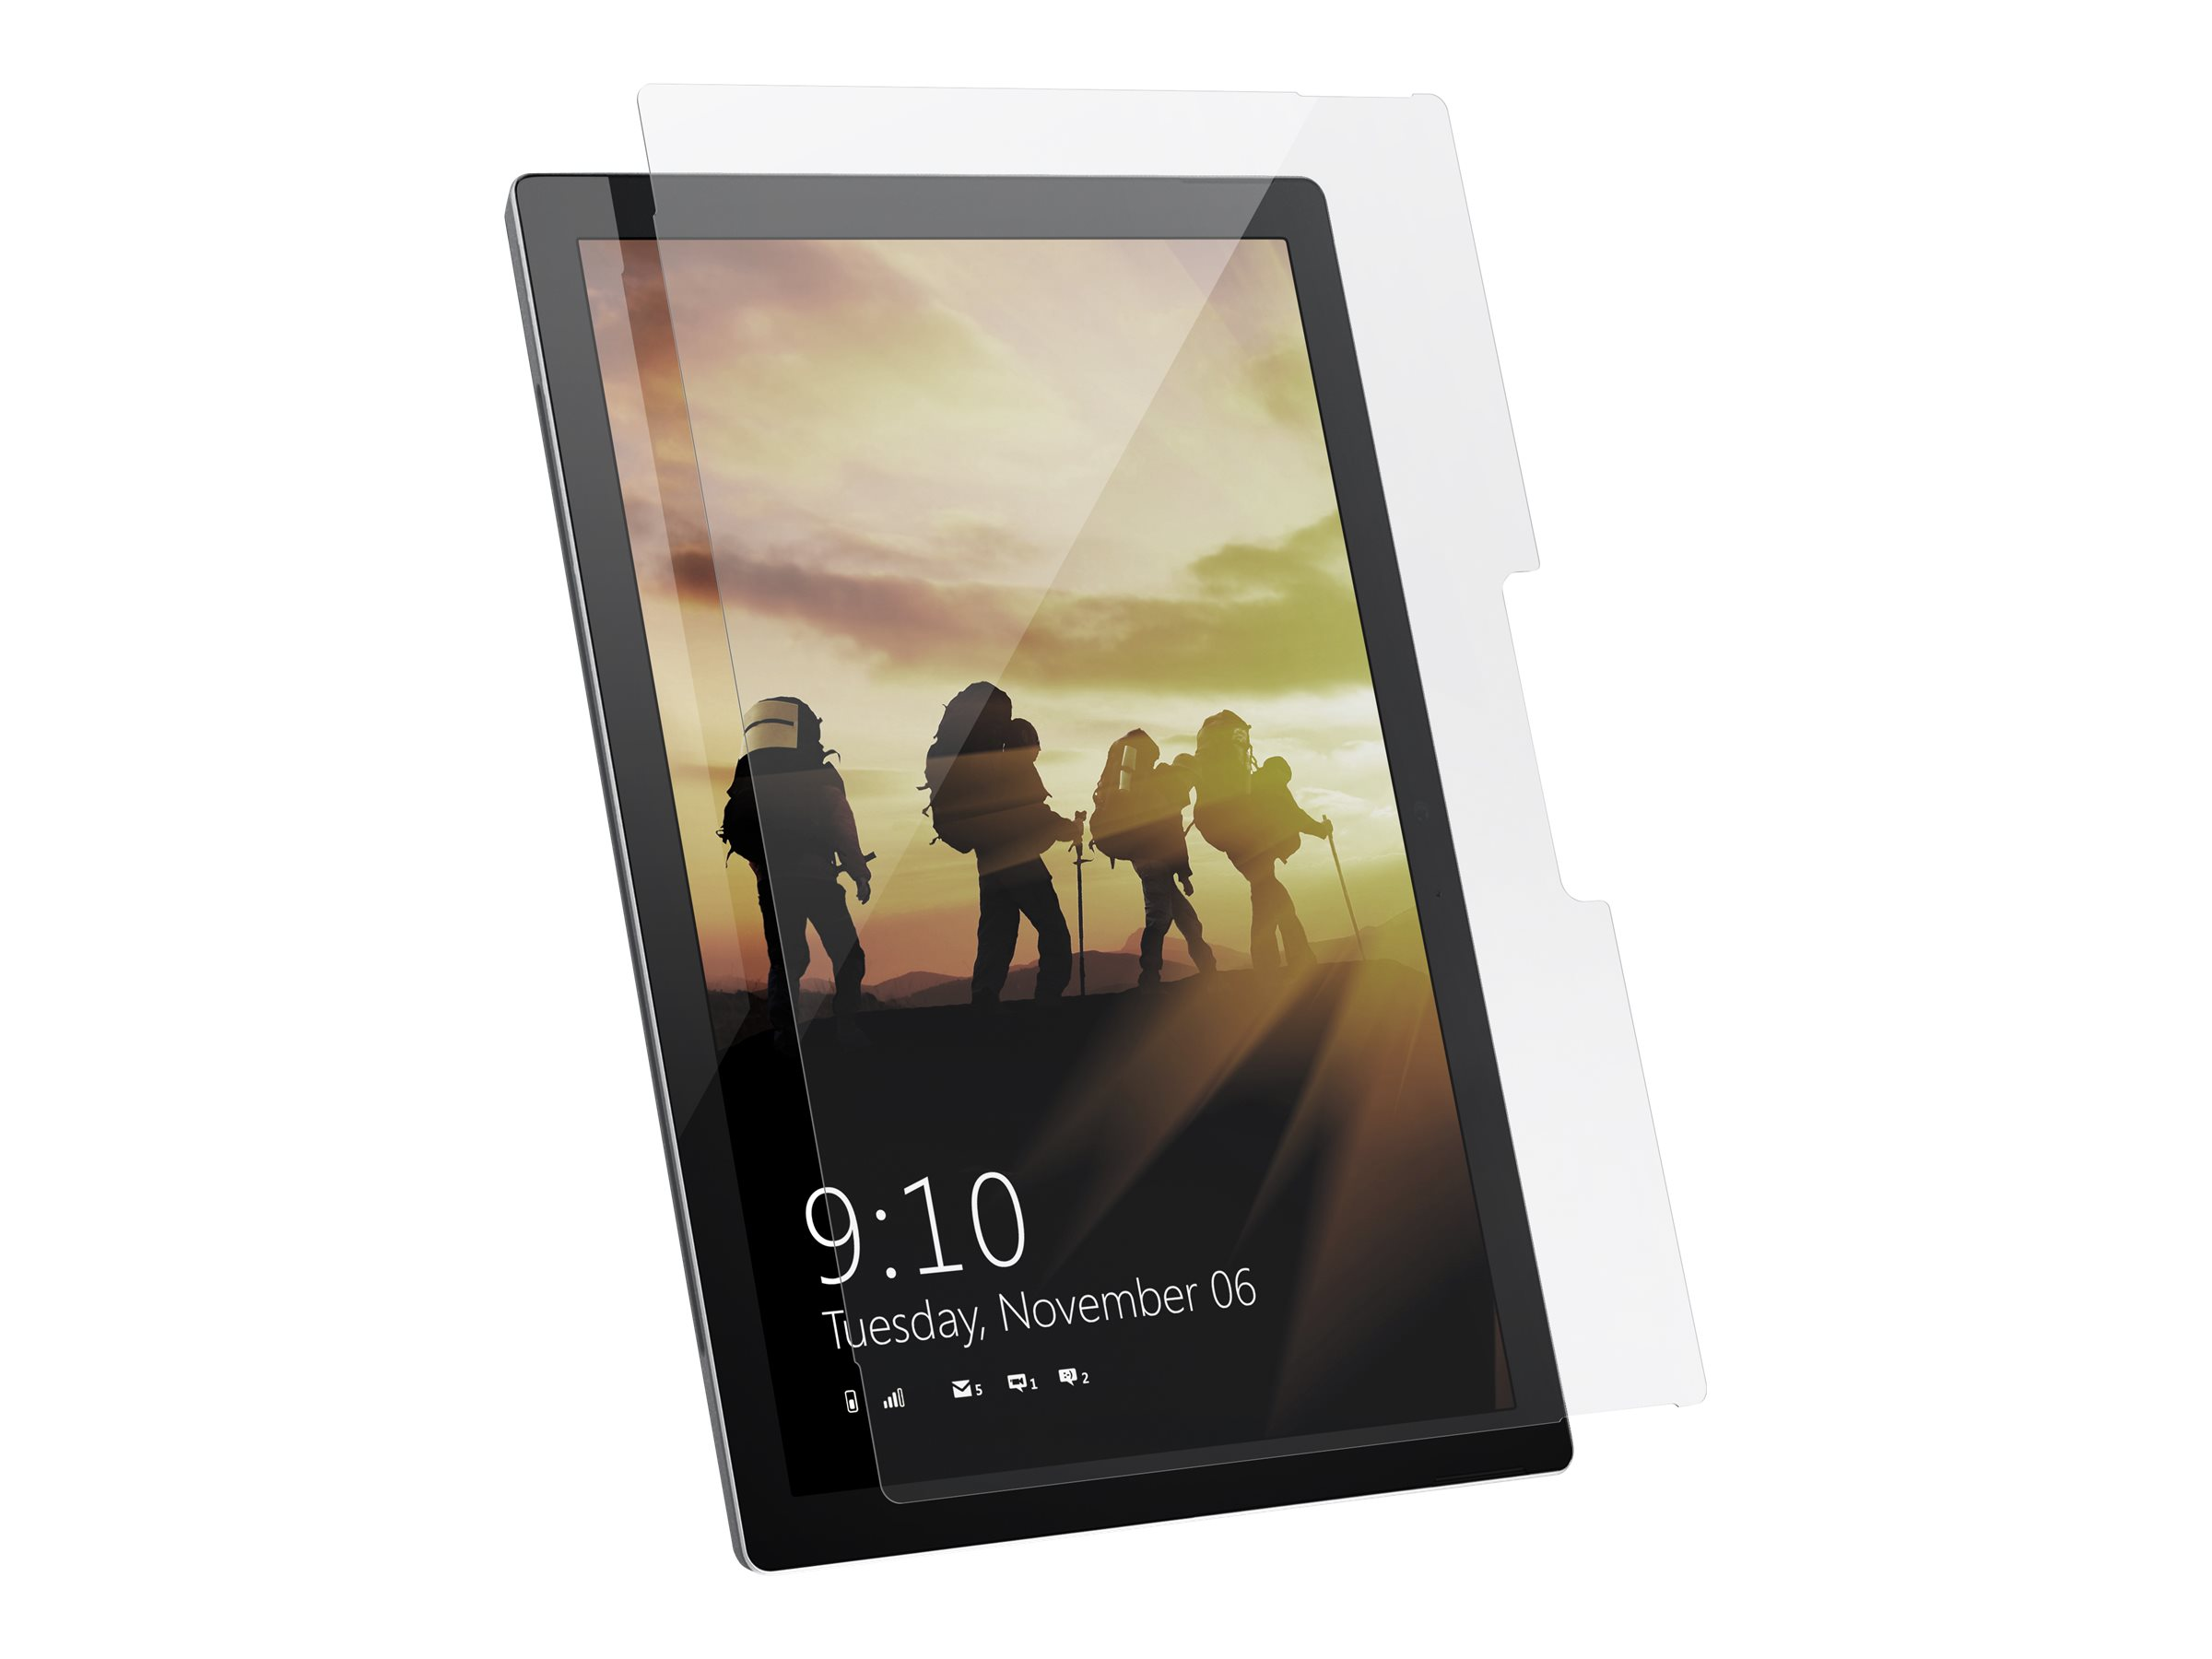 UAG Tempered Glass Screen Shield for Surface Pro 7 / Pro 6 / Pro 5 / Pro 3 / Pro LTE - screen protector for tablet